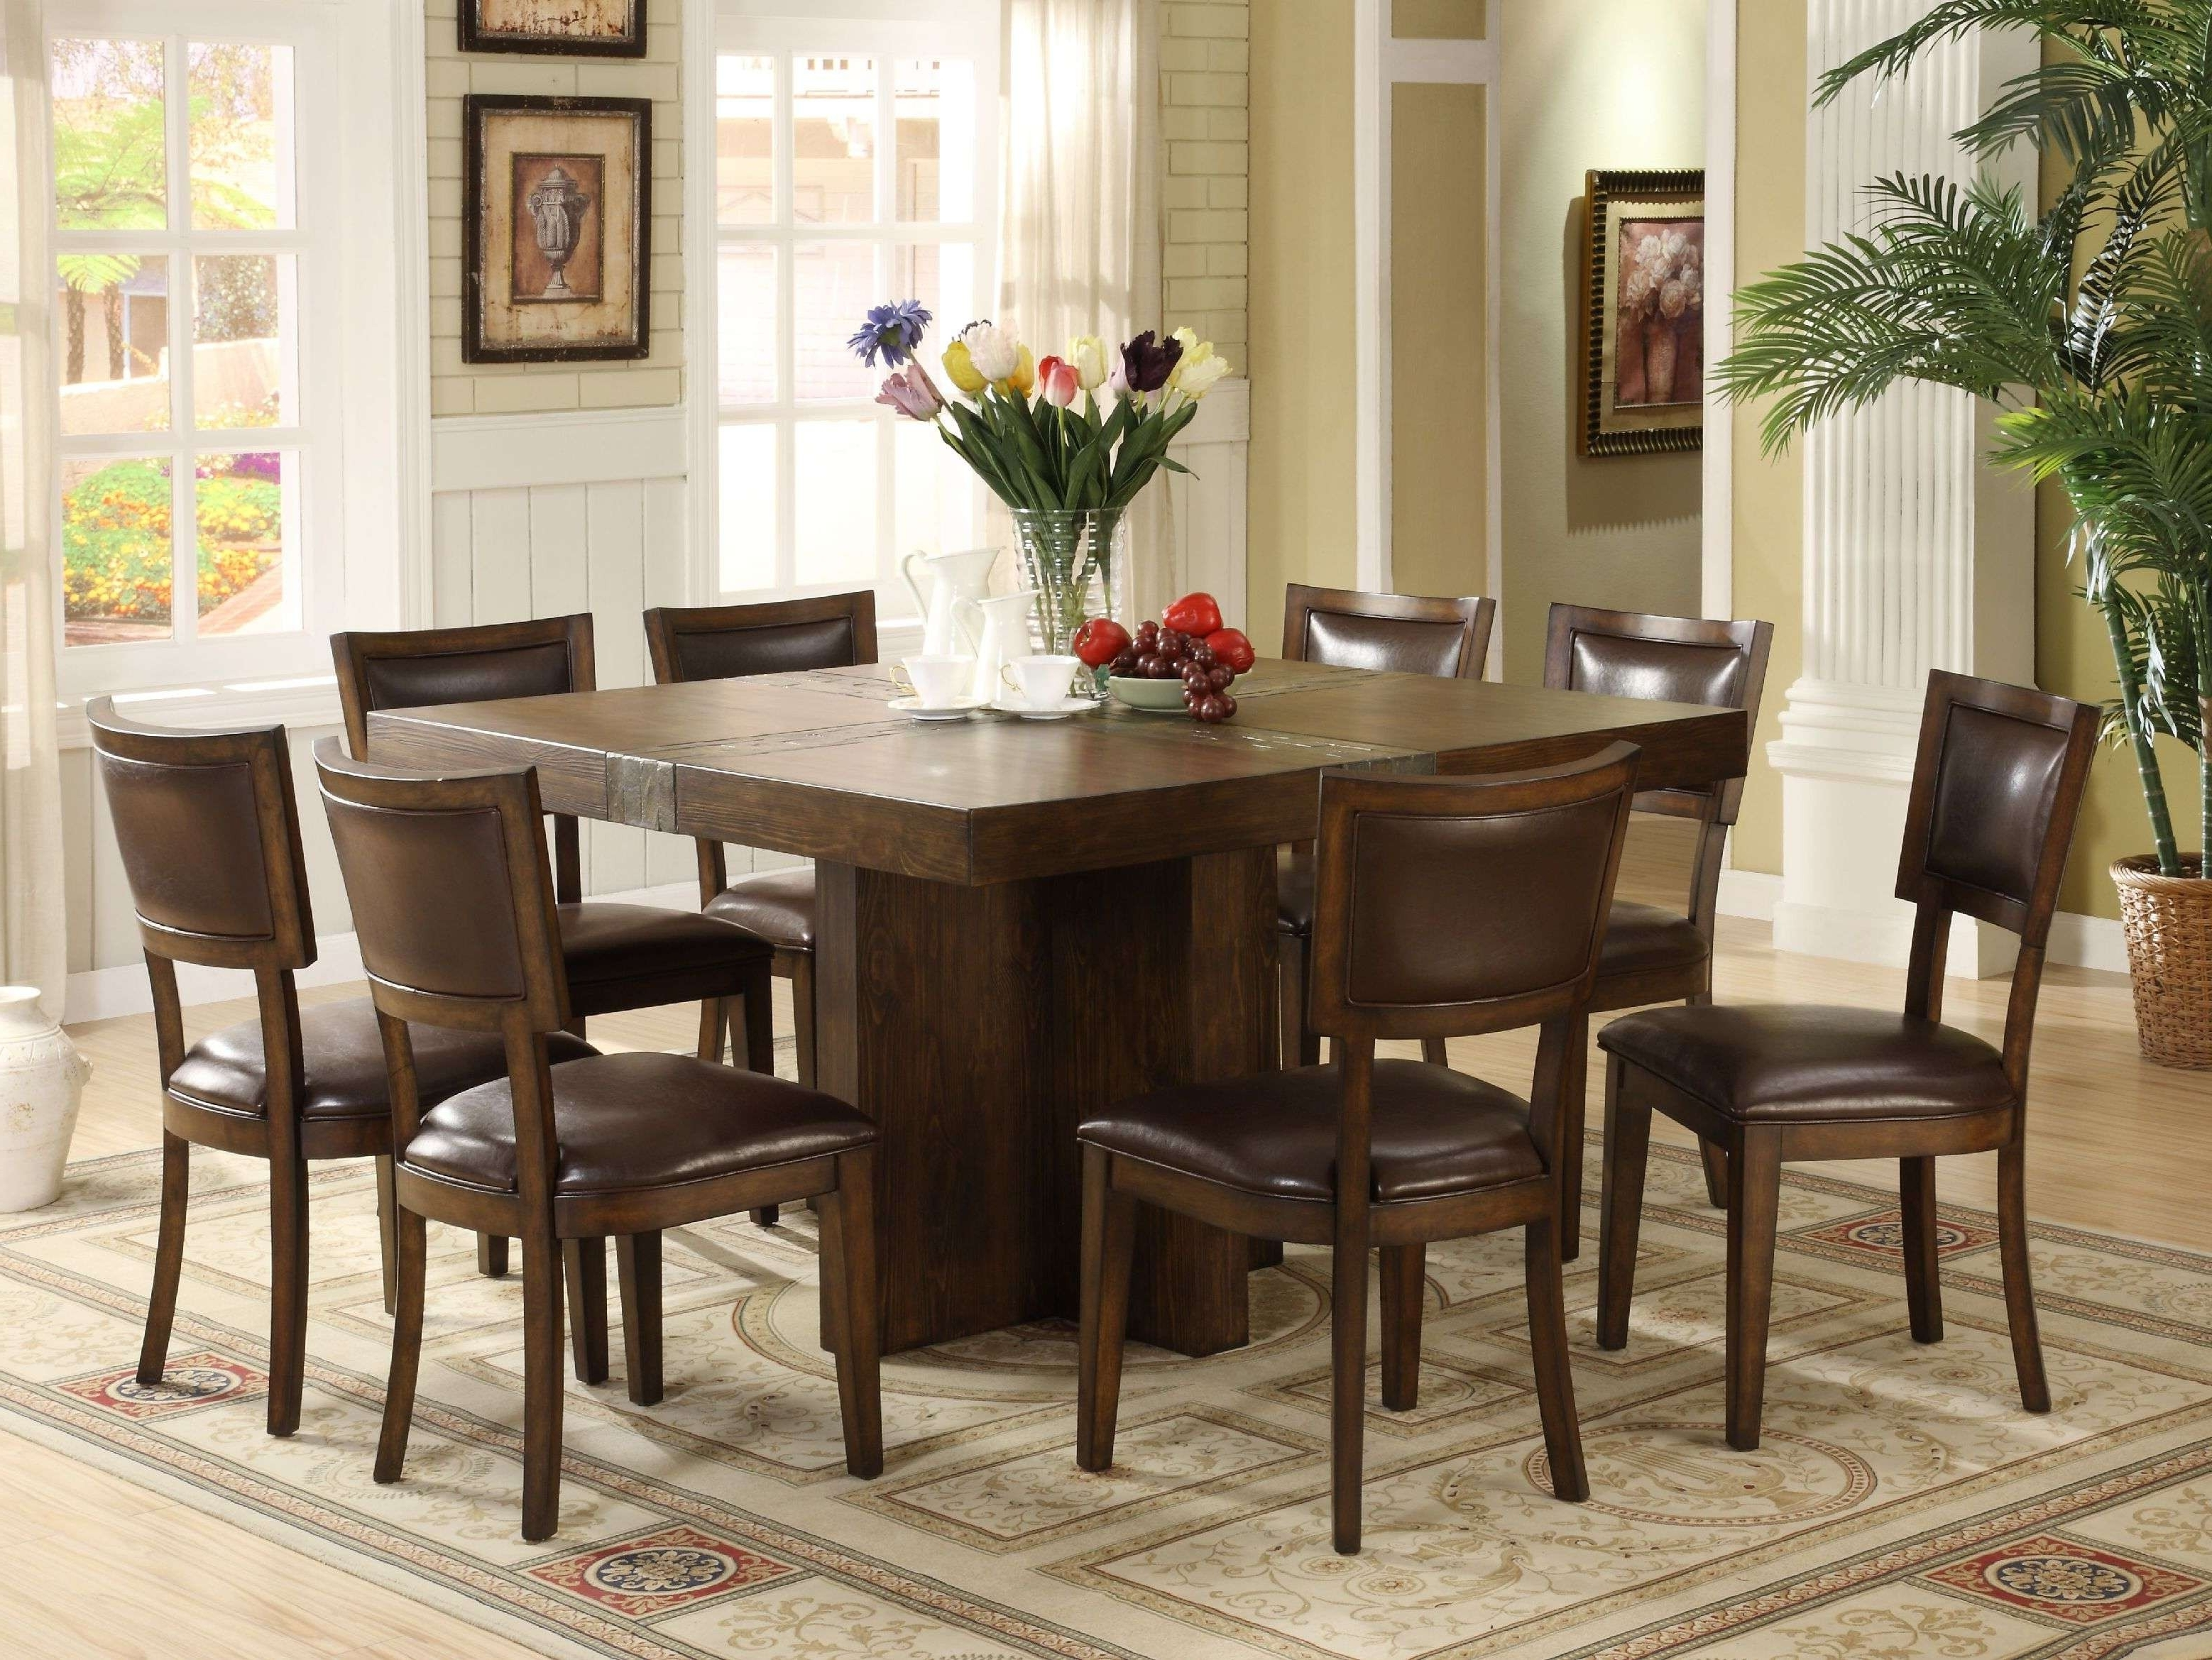 8 Chairs Dining Tables Pertaining To Most Current Solid Oak Dining Room Table And 8 Chairs Unique Best 8 Seater Dining (View 14 of 25)